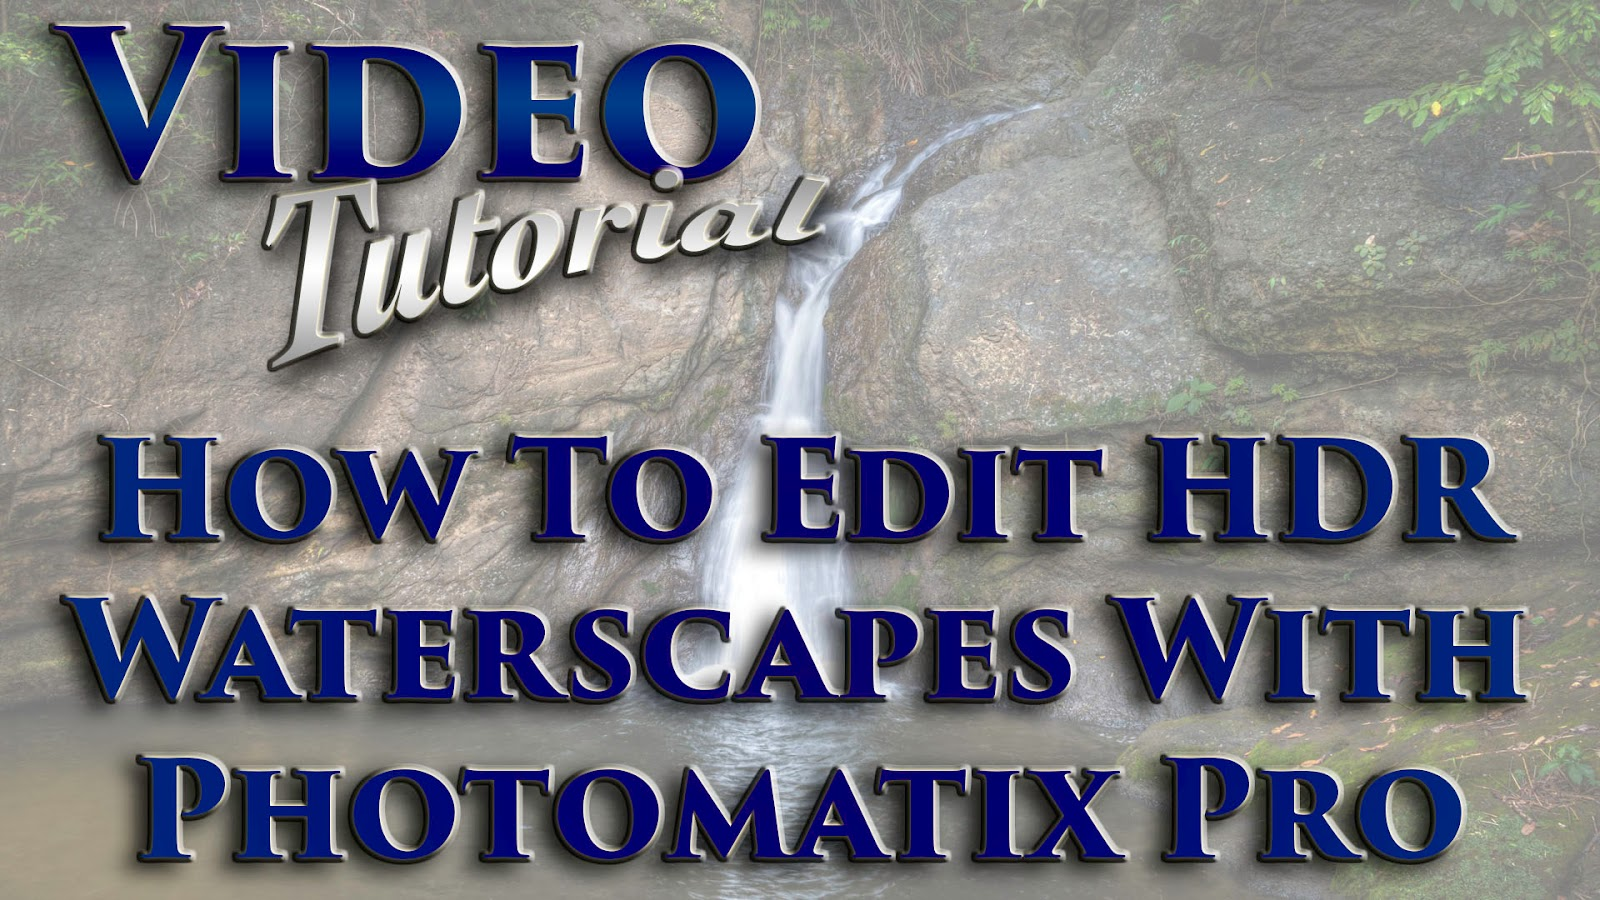 Learn How To Edit HDR Waterscapes With Photomatix Pro